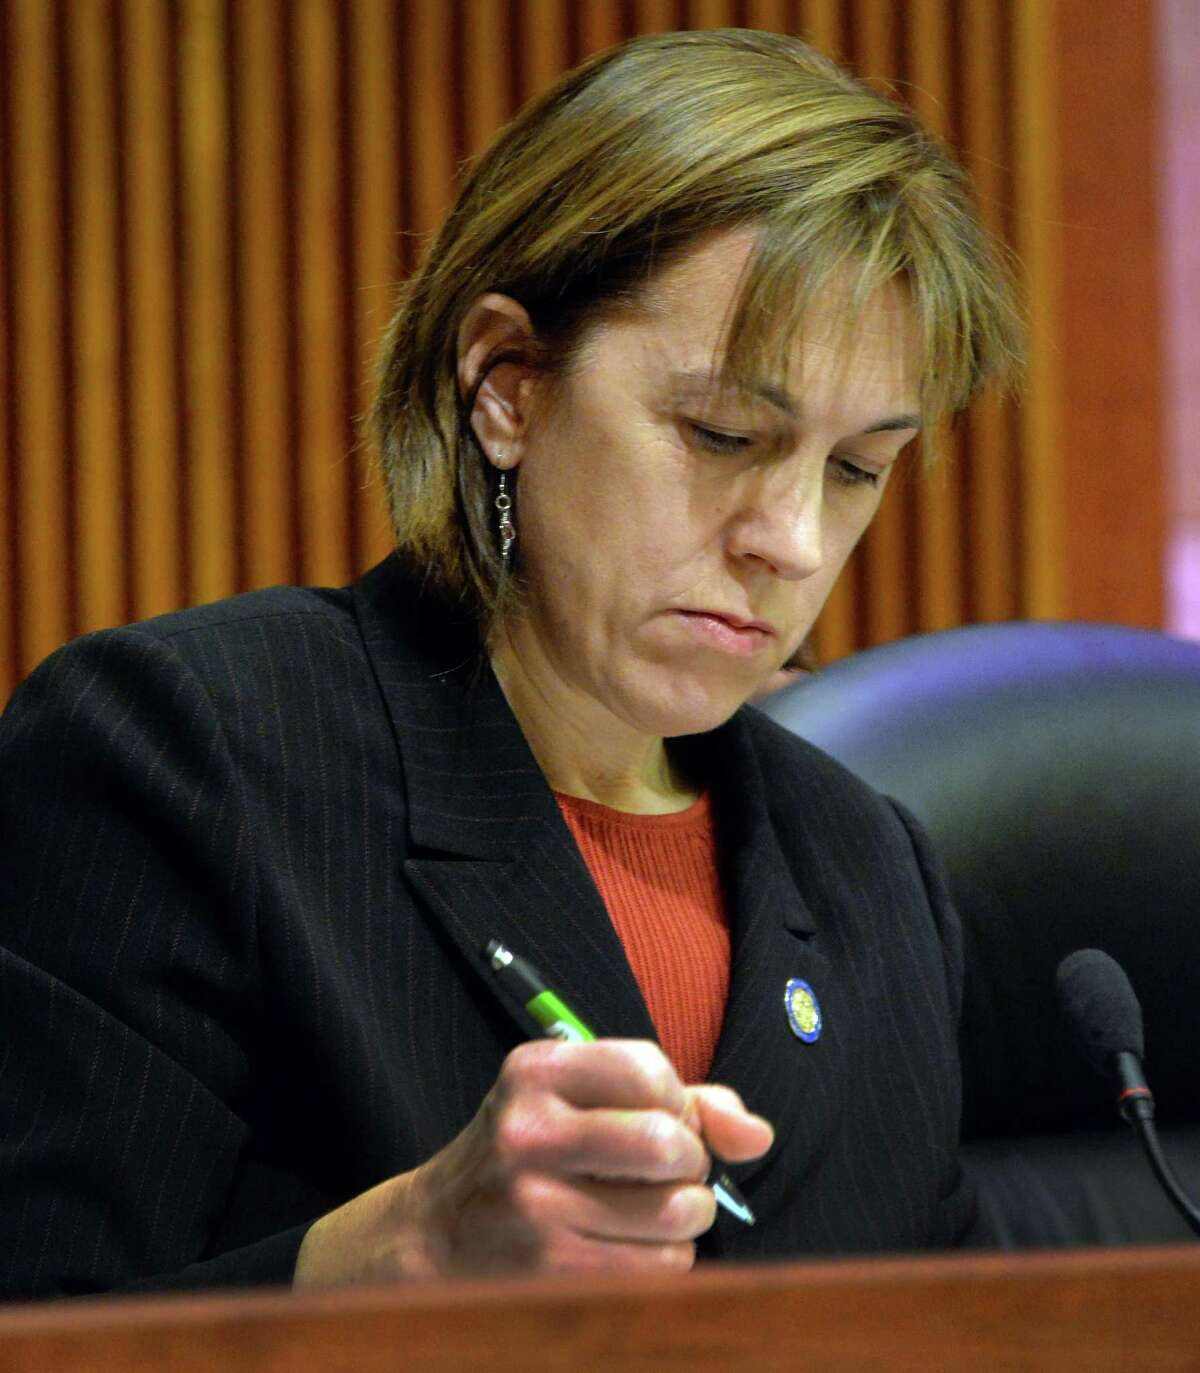 New York State Senator Cecilia Tkaczyk takes notes as she listens to testimony from NYS Education Commissioner Dr. John B. King, Jr. during a legislative hearing on Gov. Cuomo's budget proposals Tuesday Jan. 28, 2014, in Albany,NY. (John Carl D'Annibale / Times Union)